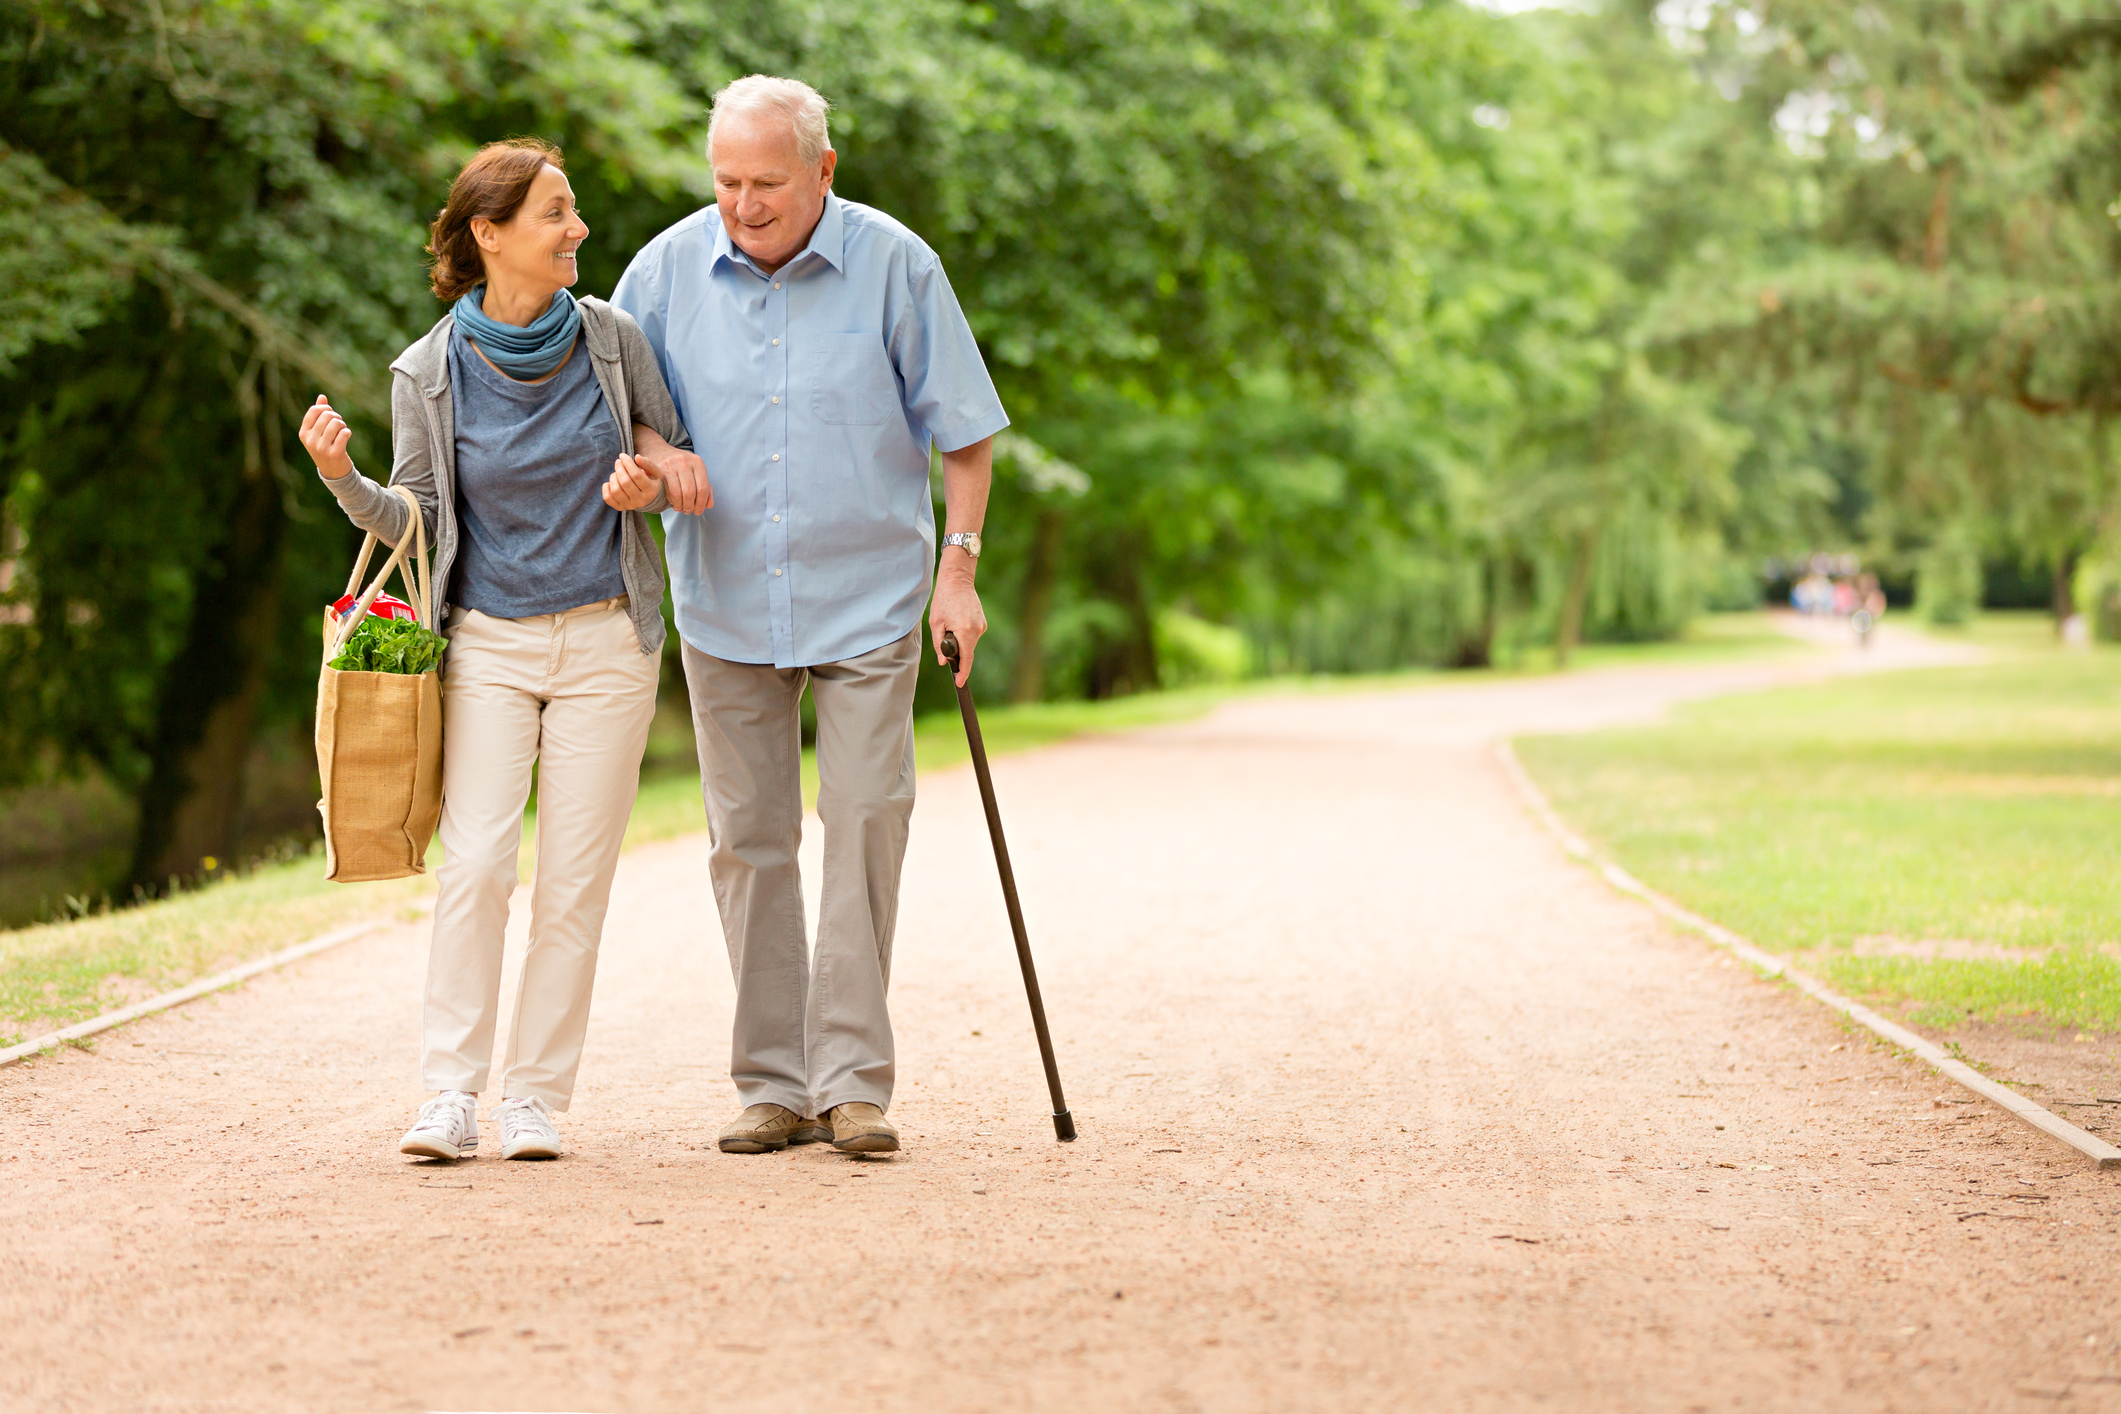 Everyday Activities - We can provide your loved with full support for their everyday activities such as:ShoppingPrescription collectionsWalking for exerciseCompanionship